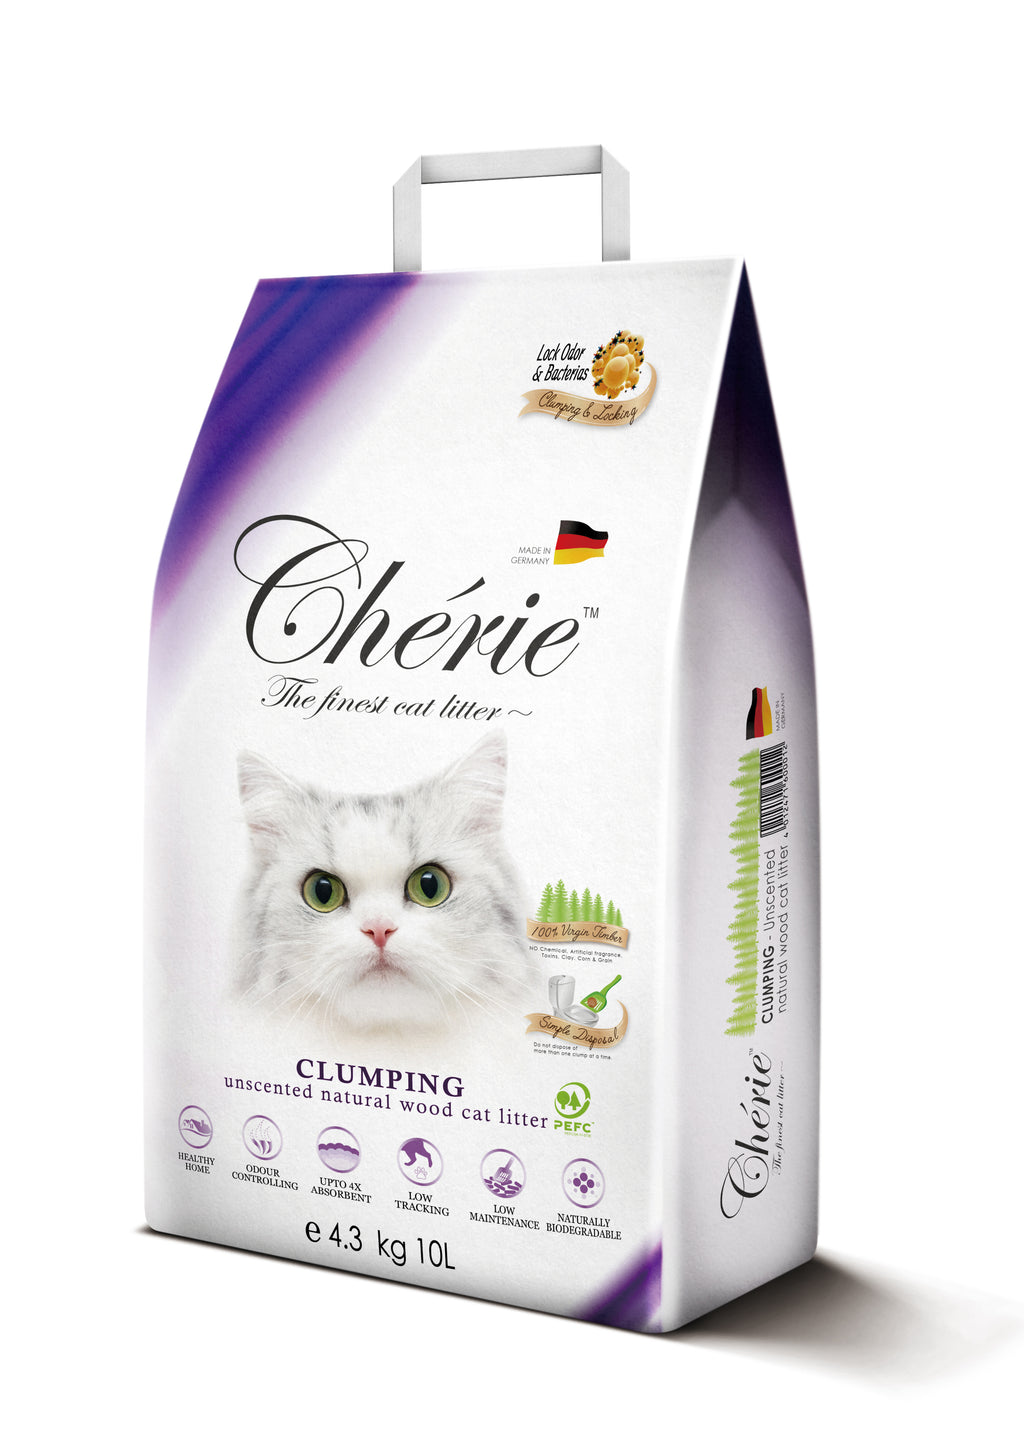 PROMO: 3 FOR $54 Chérie Unscented Clumping Natural Wood Cat Litter 10L